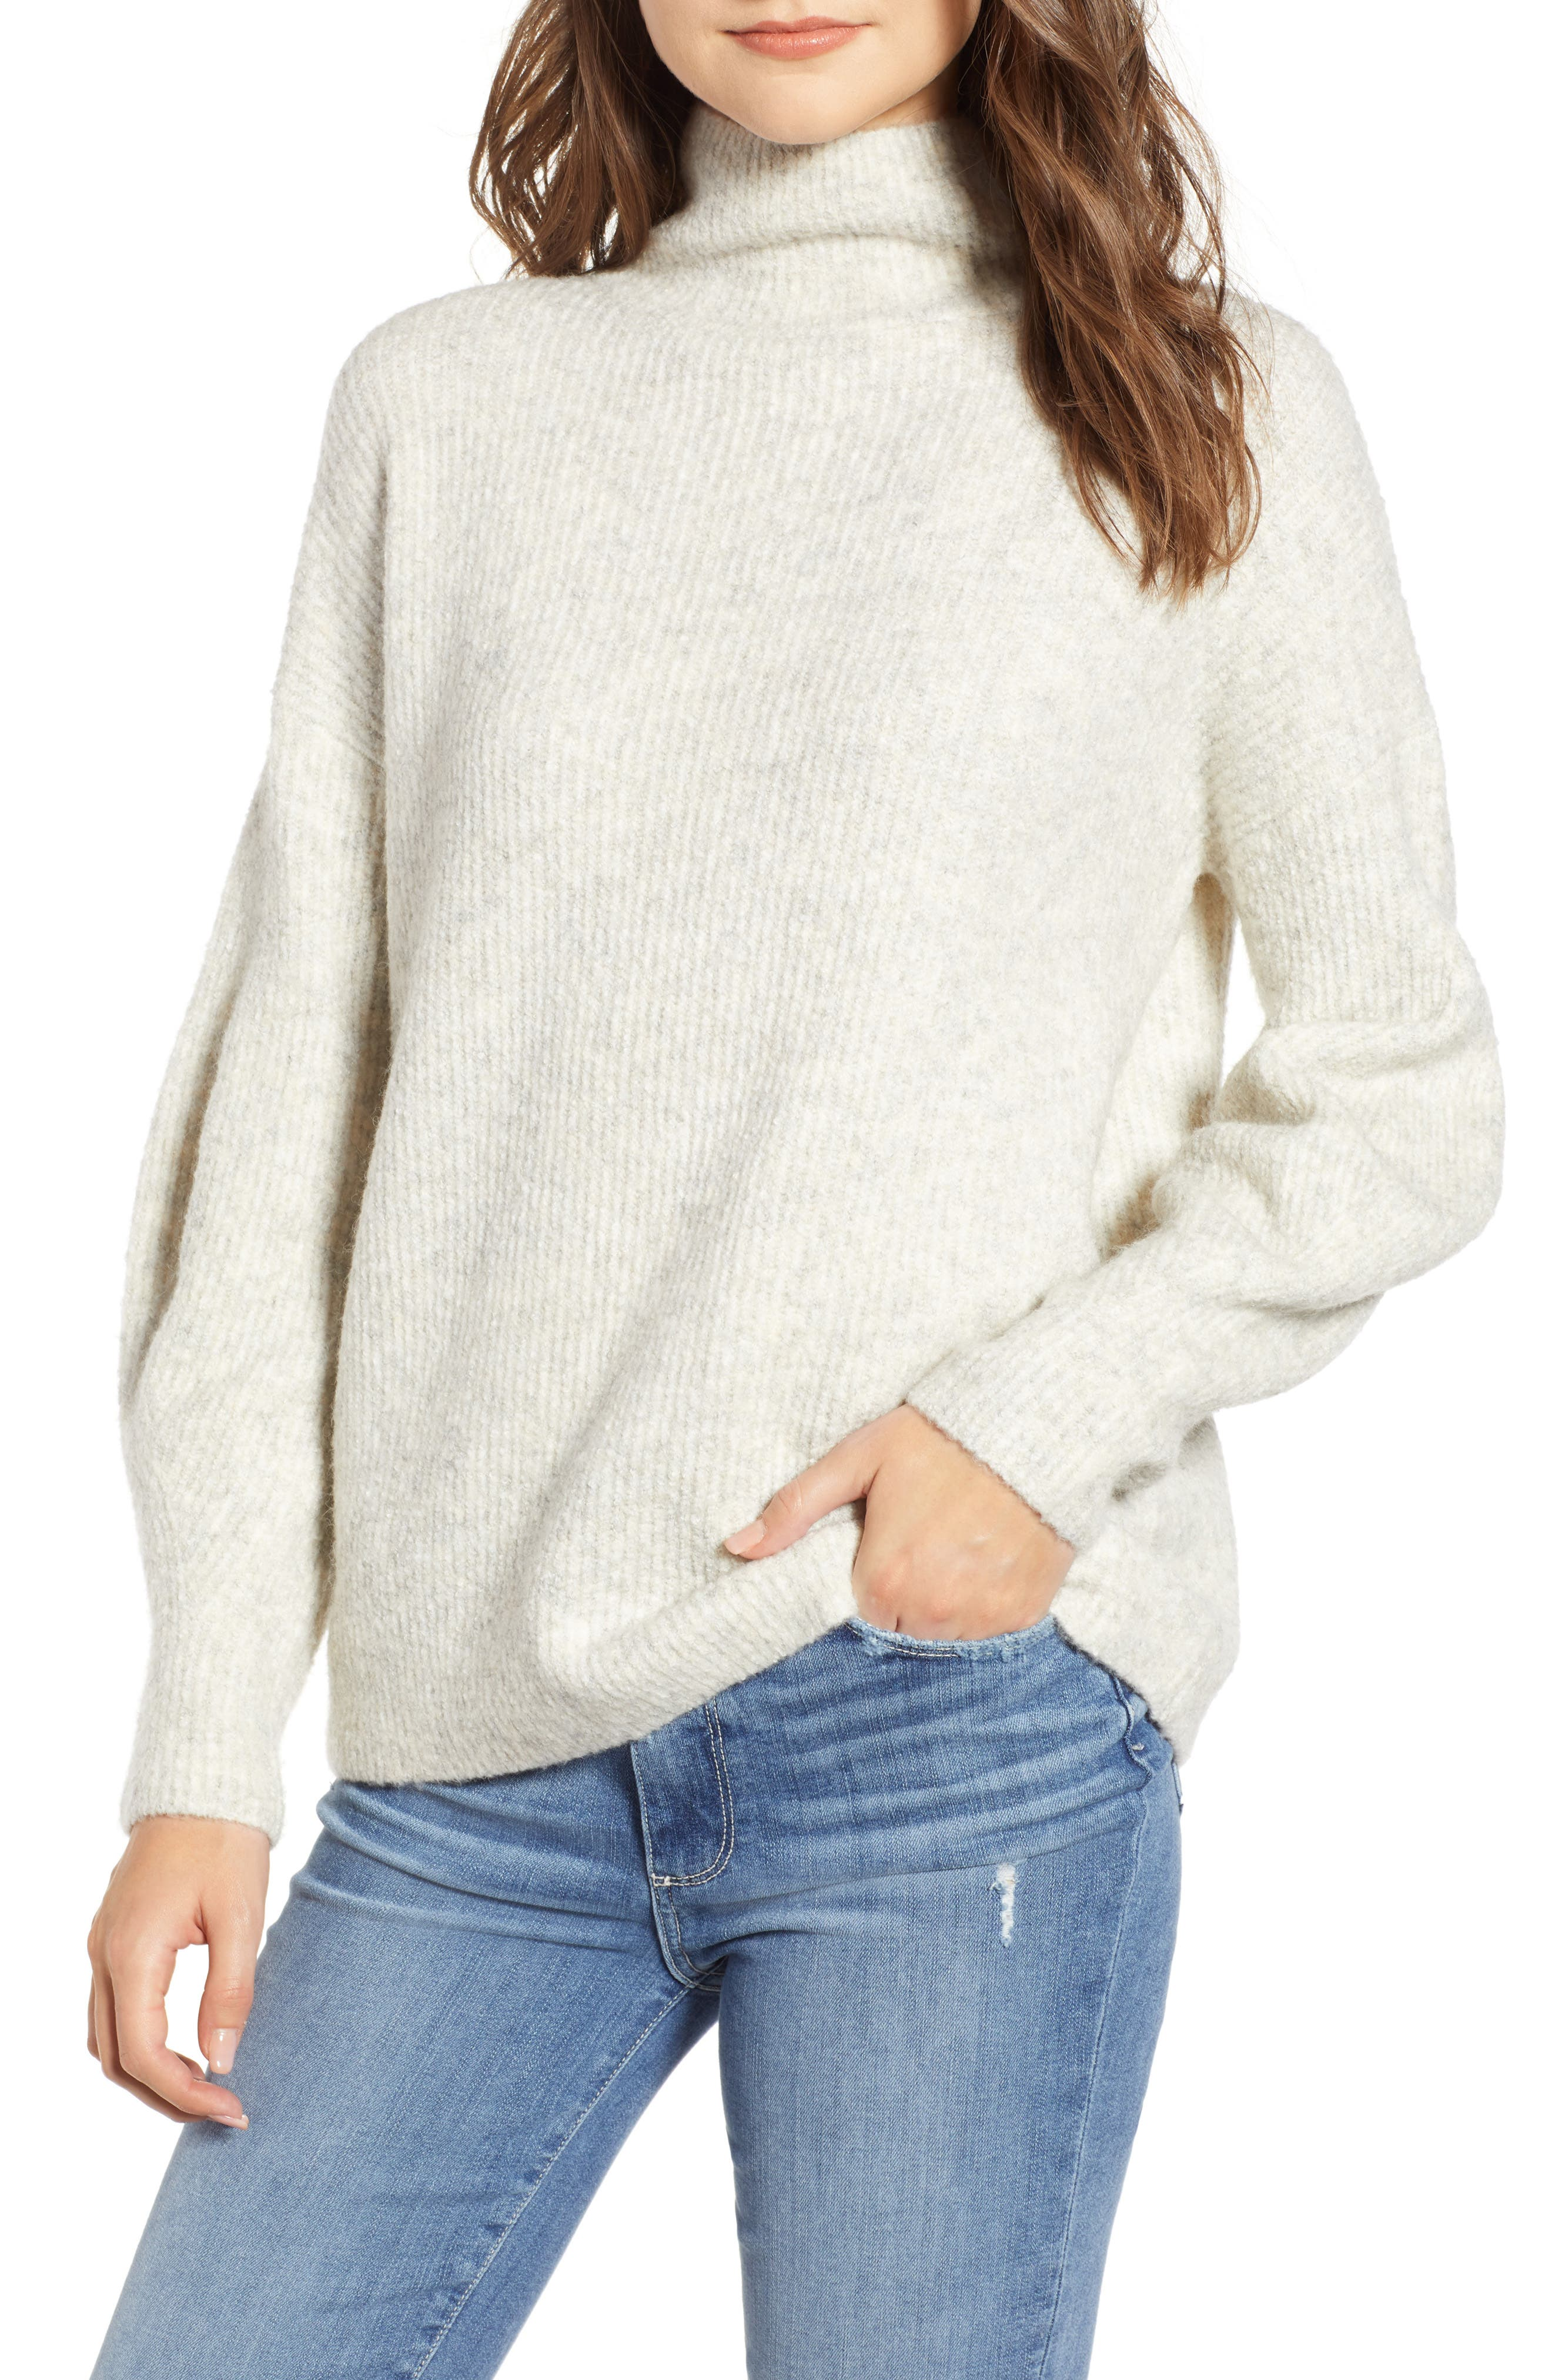 Urban Flossy Cowl Neck Sweater,                             Main thumbnail 1, color,                             OATMEAL